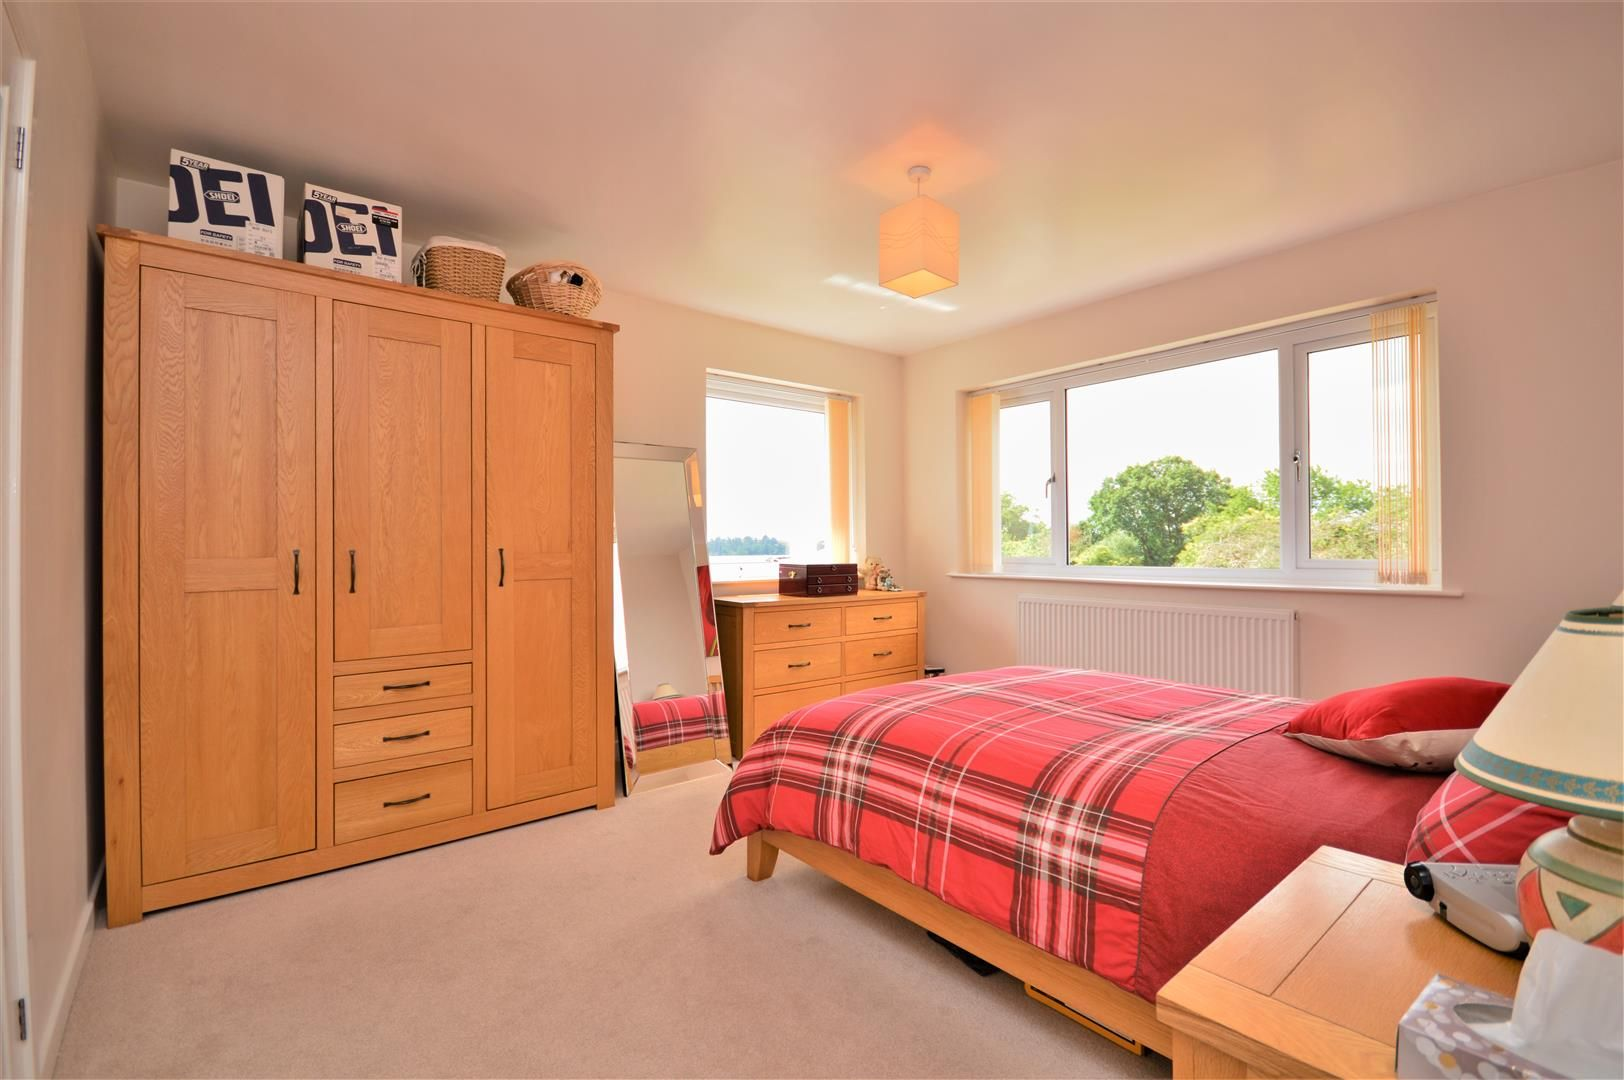 3 bed detached for sale in Kings Caple  - Property Image 10